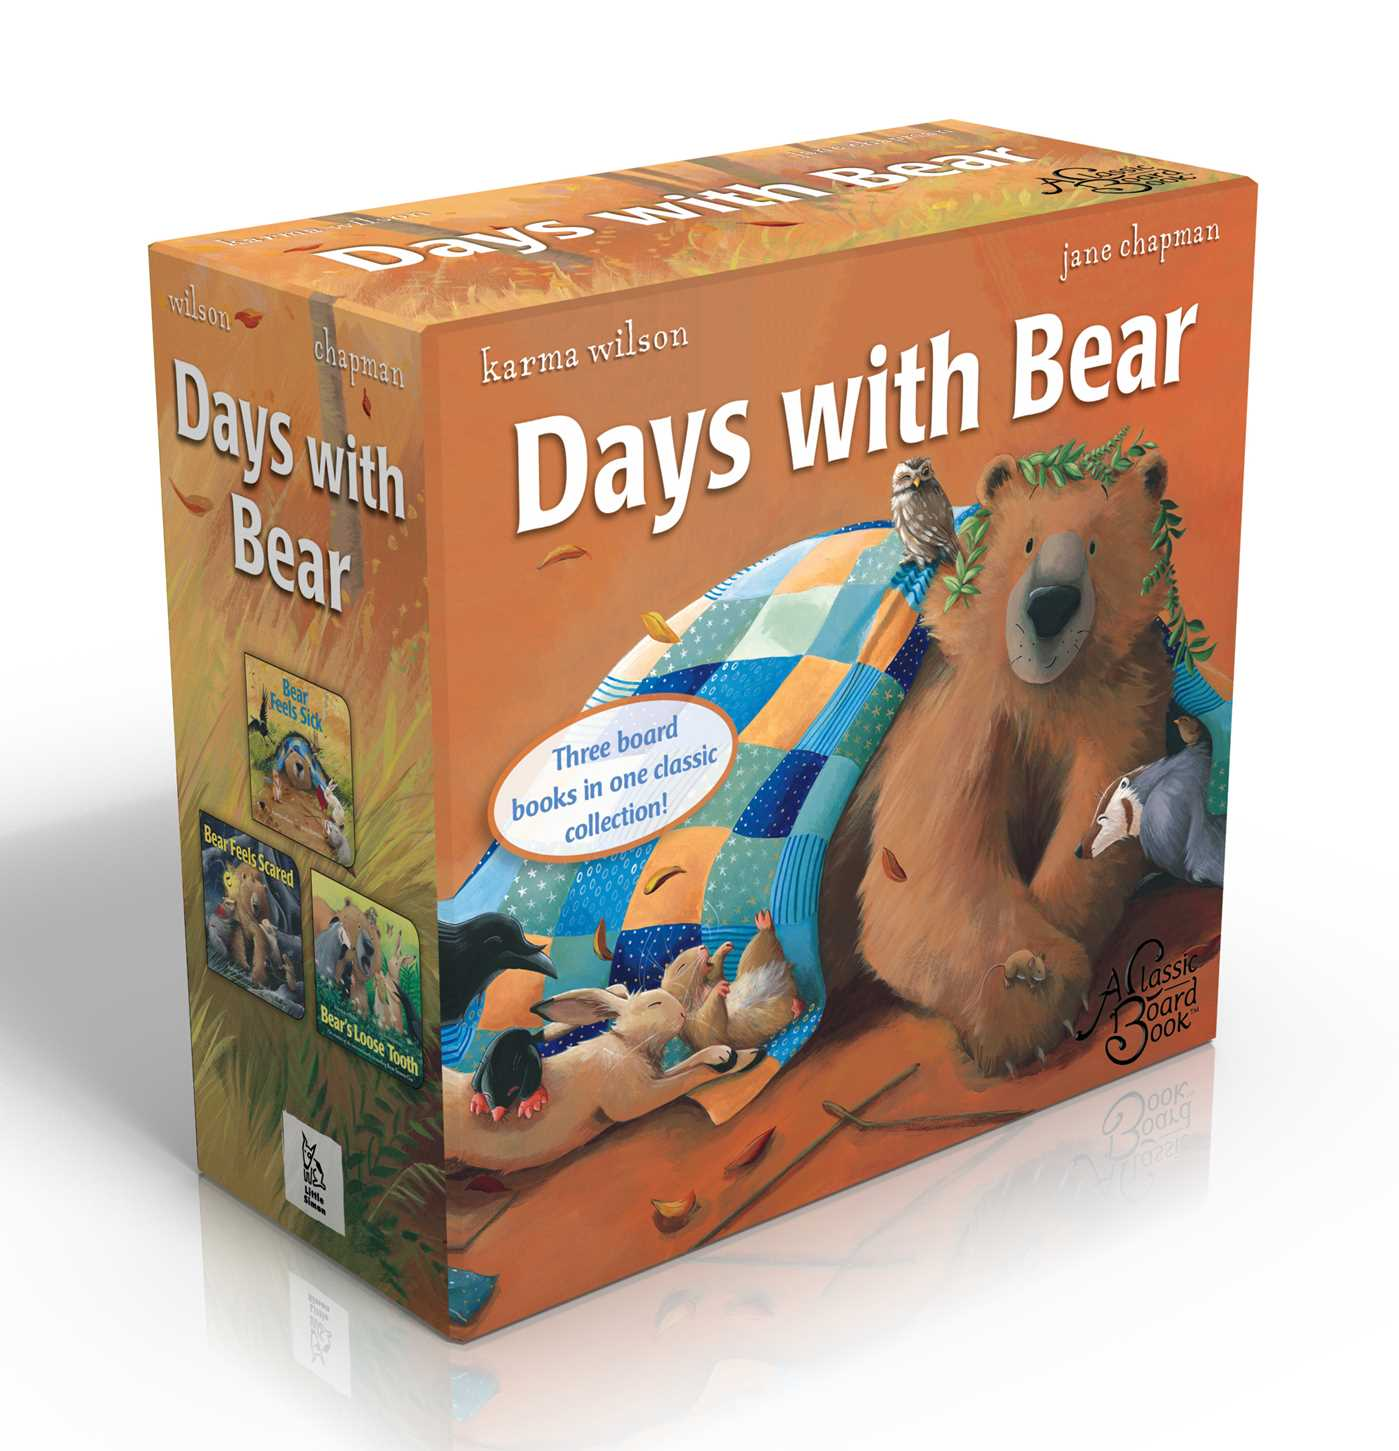 Days with bear 9781481430340 hr